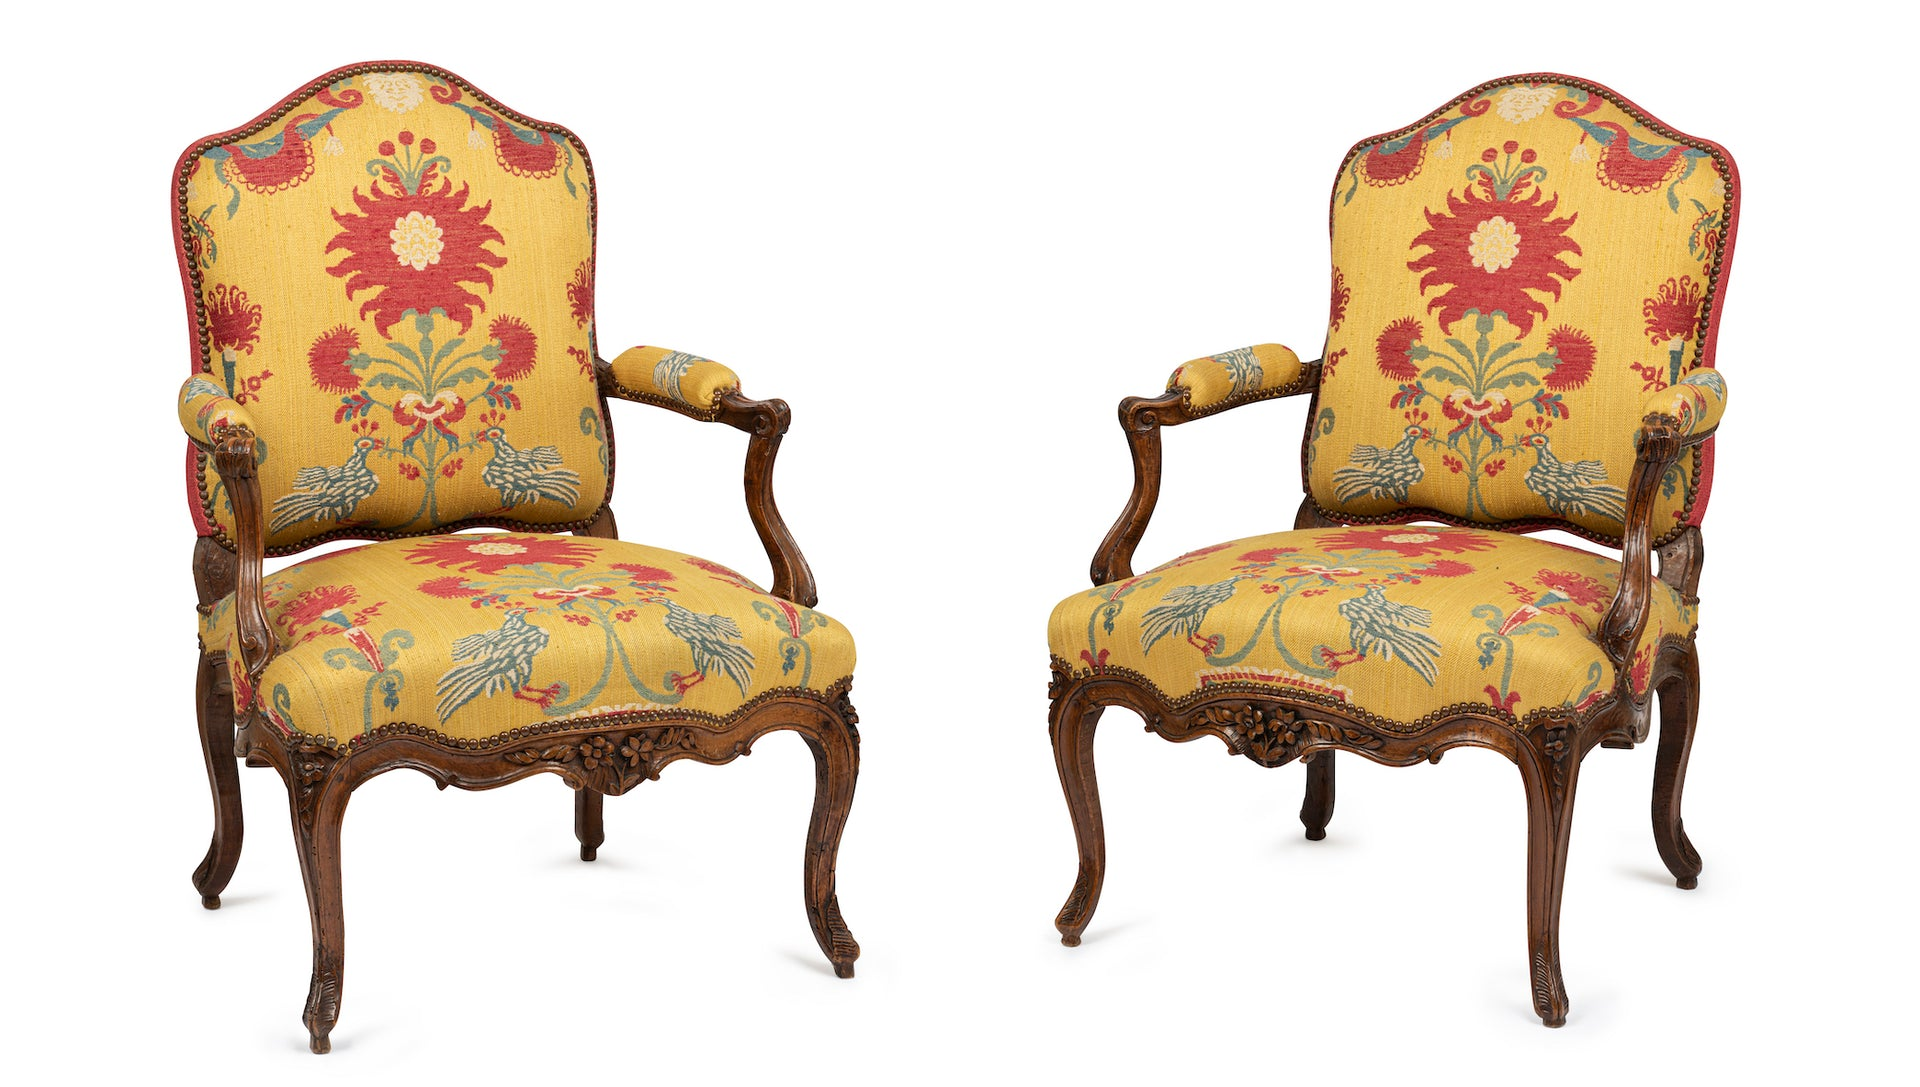 An exceptional pair of Louis XV period carved walnut fauteuils, French 18th Century